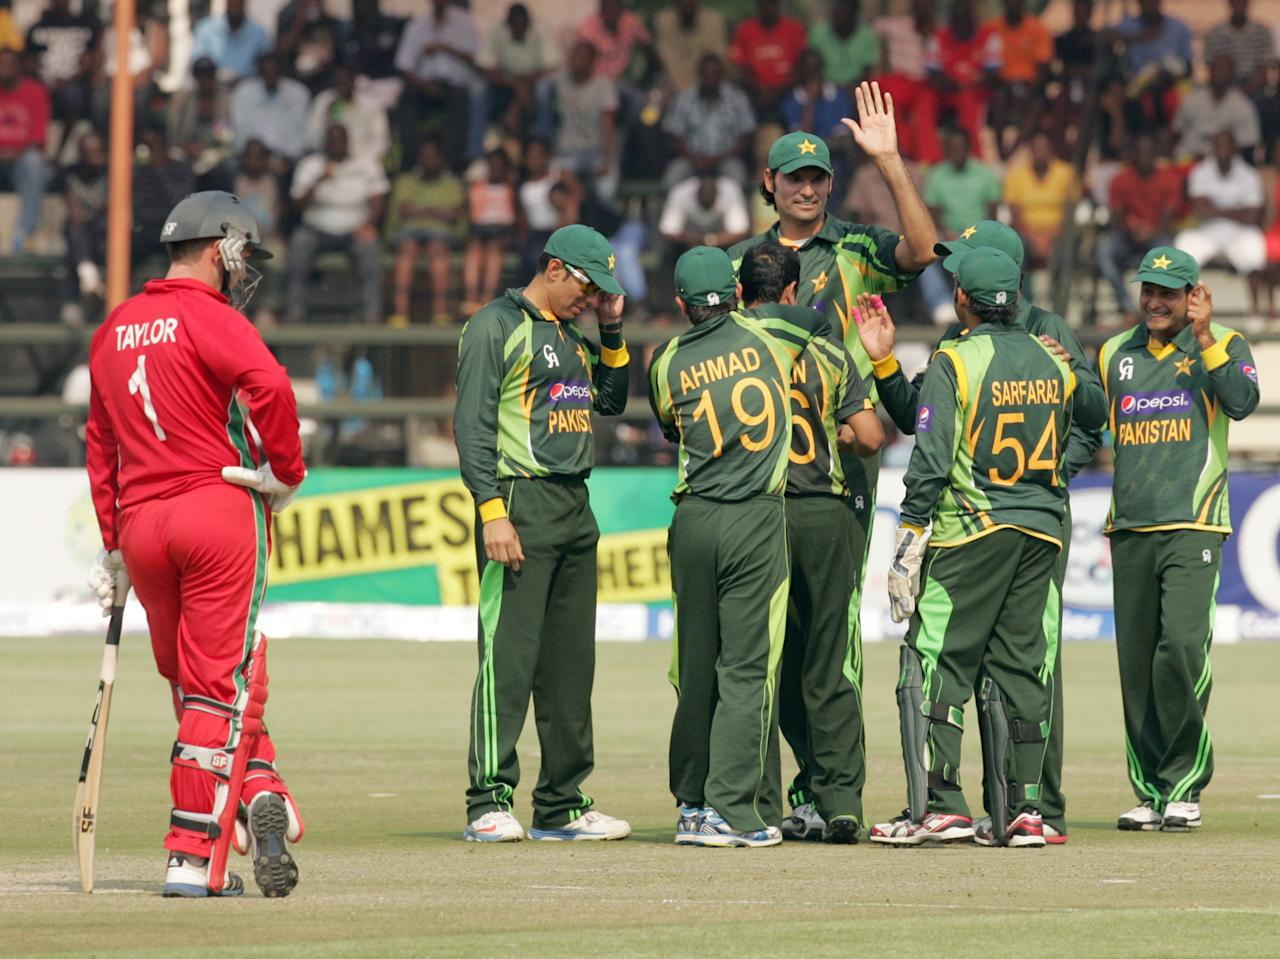 Zimbabwe captain Brendan Taylor (L) watches Pakistan players celebrate a wicket on August 31, 2013 during the third and final one-day international at the Harare Sports Club. AFP PHOTO / JEKESAI NJIKIZANA        (Photo credit should read JEKESAI NJIKIZANA/AFP/Getty Images)